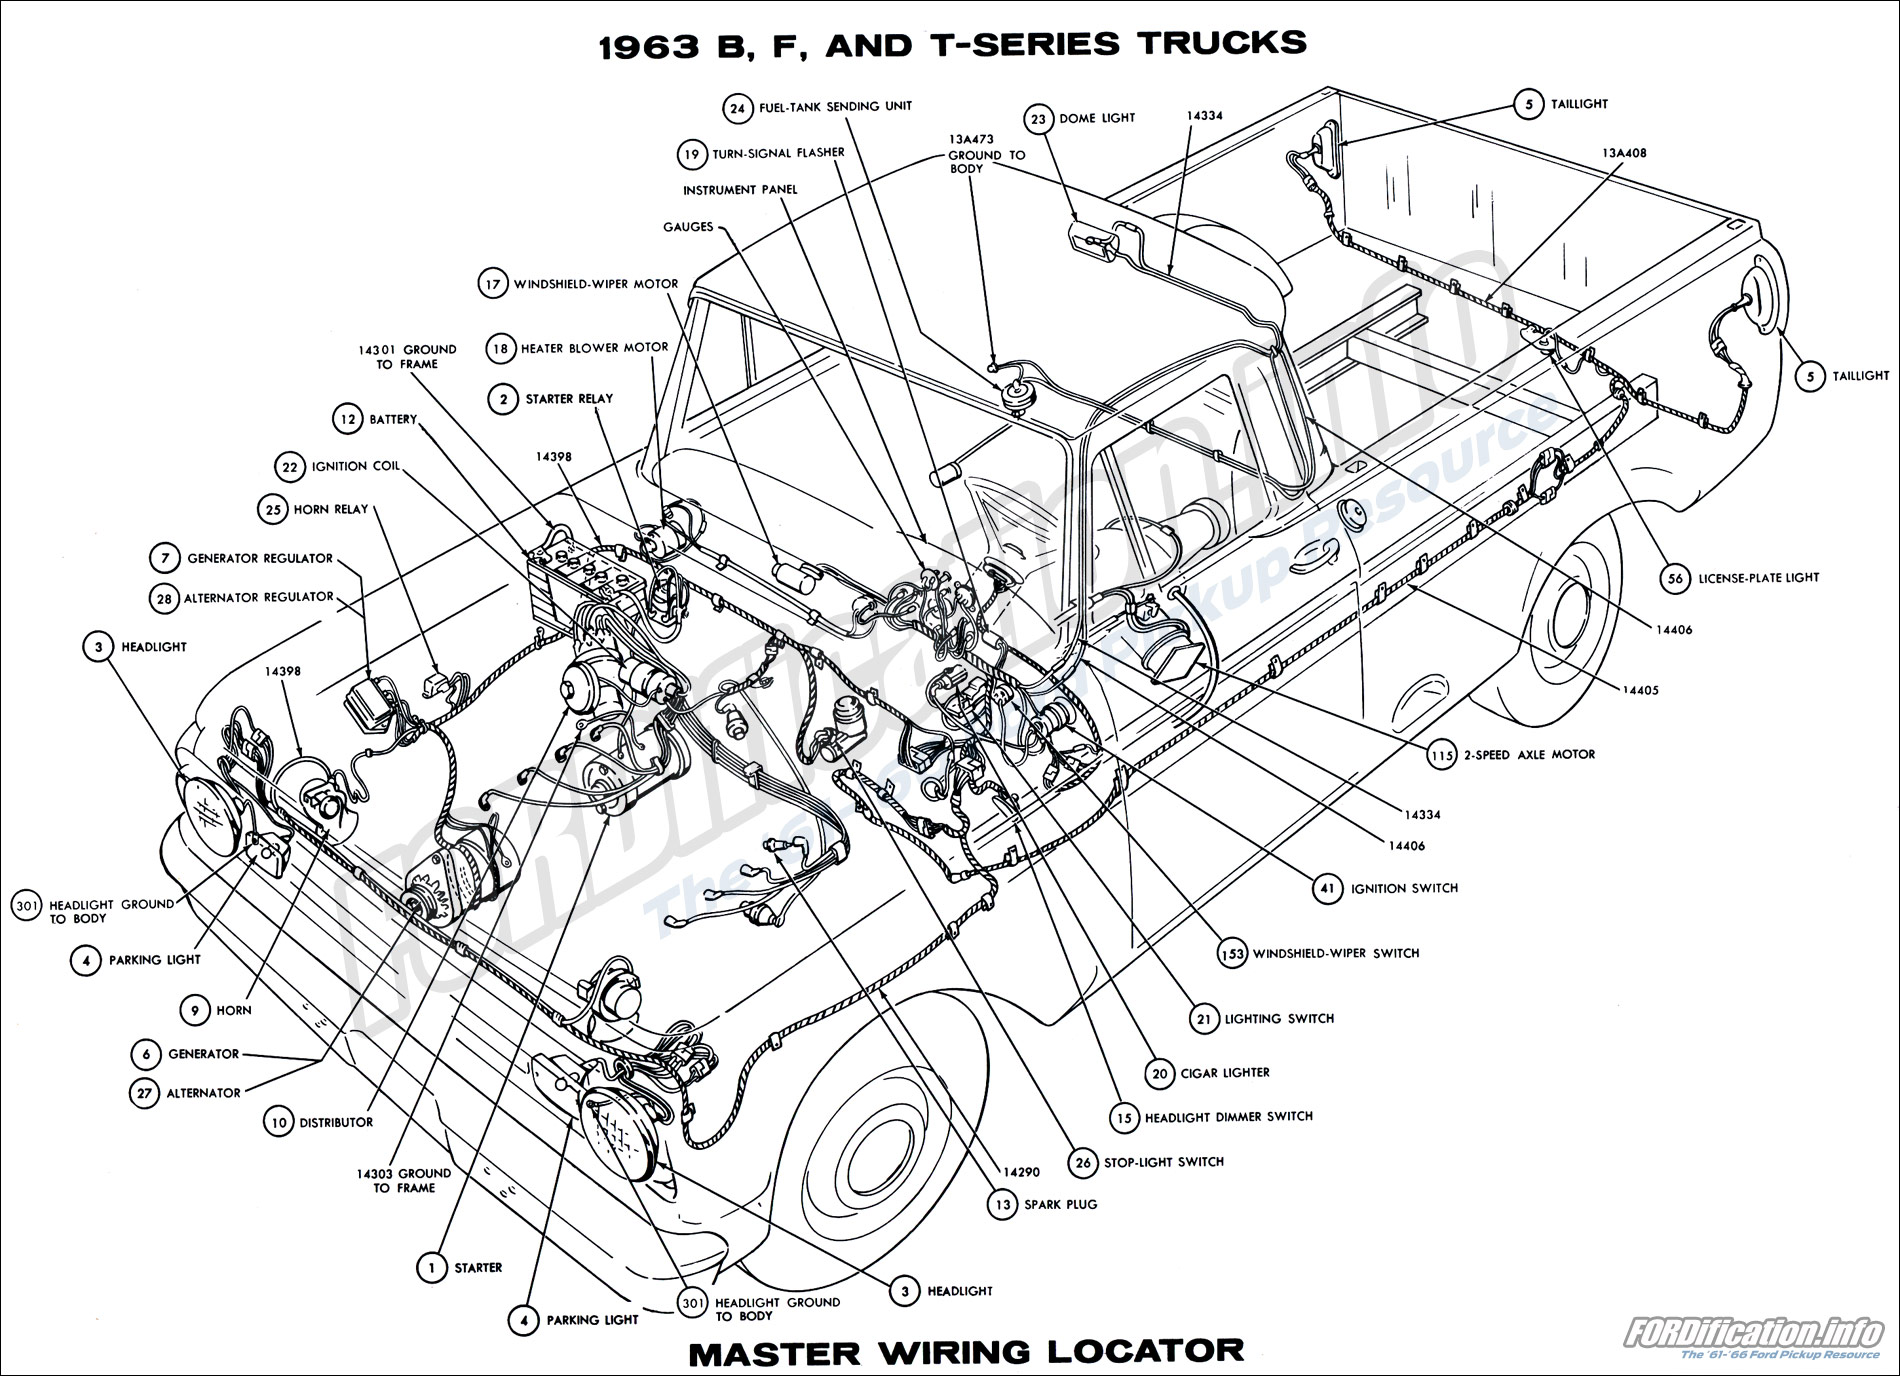 63masterlocator 1963 ford truck wiring diagrams fordification info the '61 '66 Ford Truck Wiring Diagrams at aneh.co